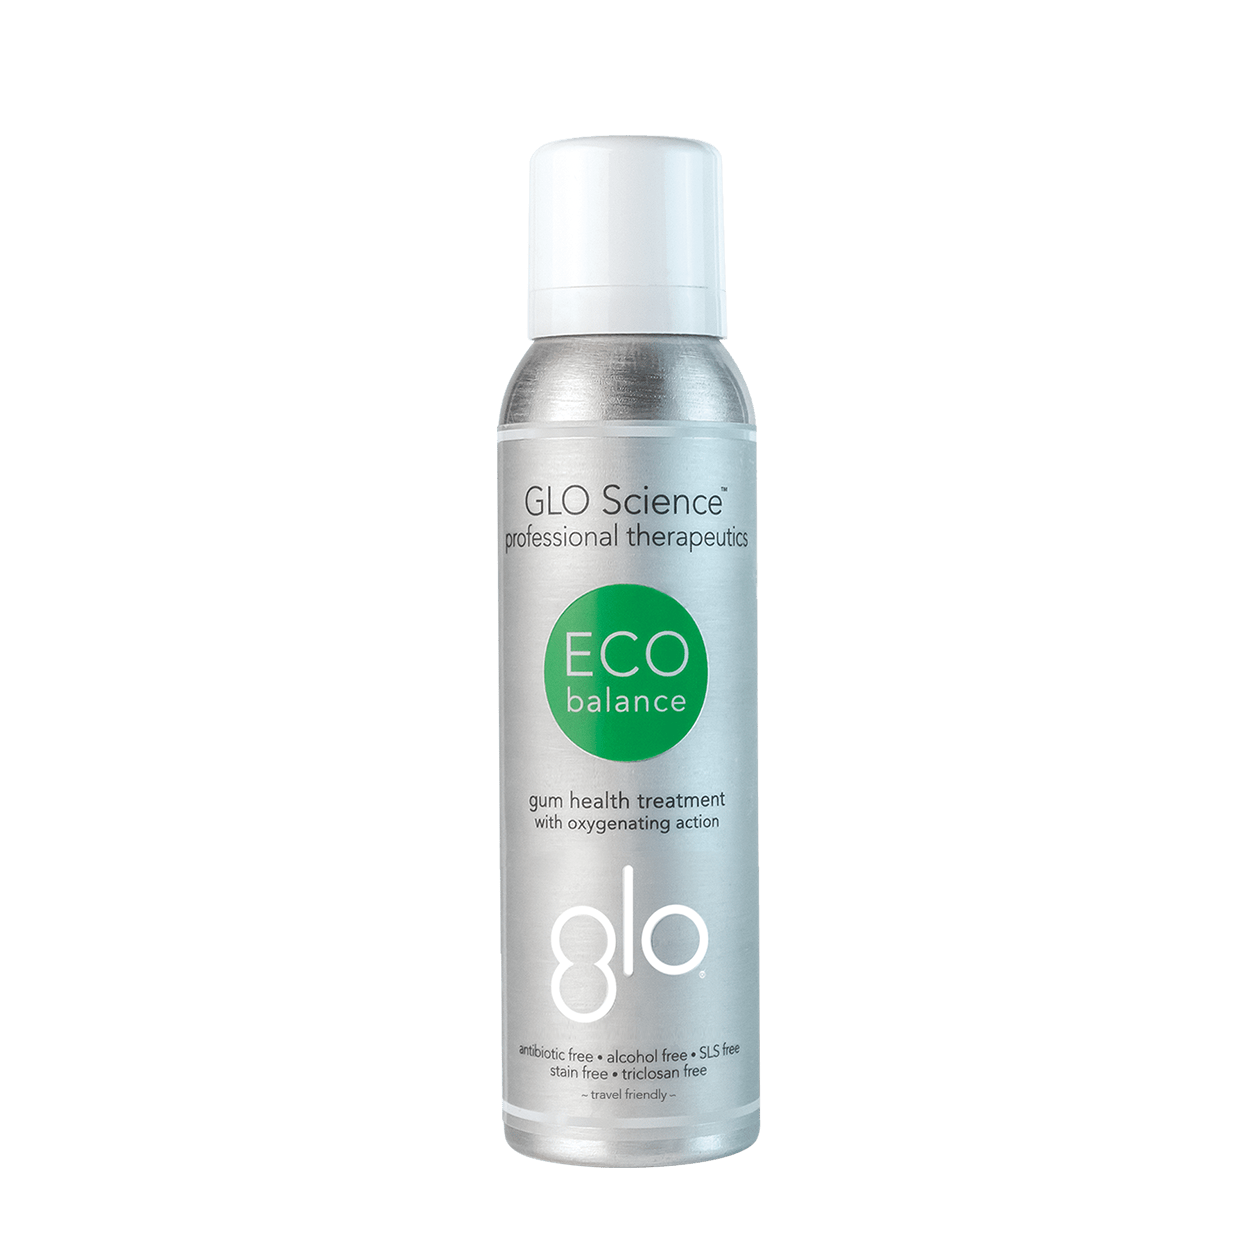 Single bottle of GLO Science Eco Balance on a black background.